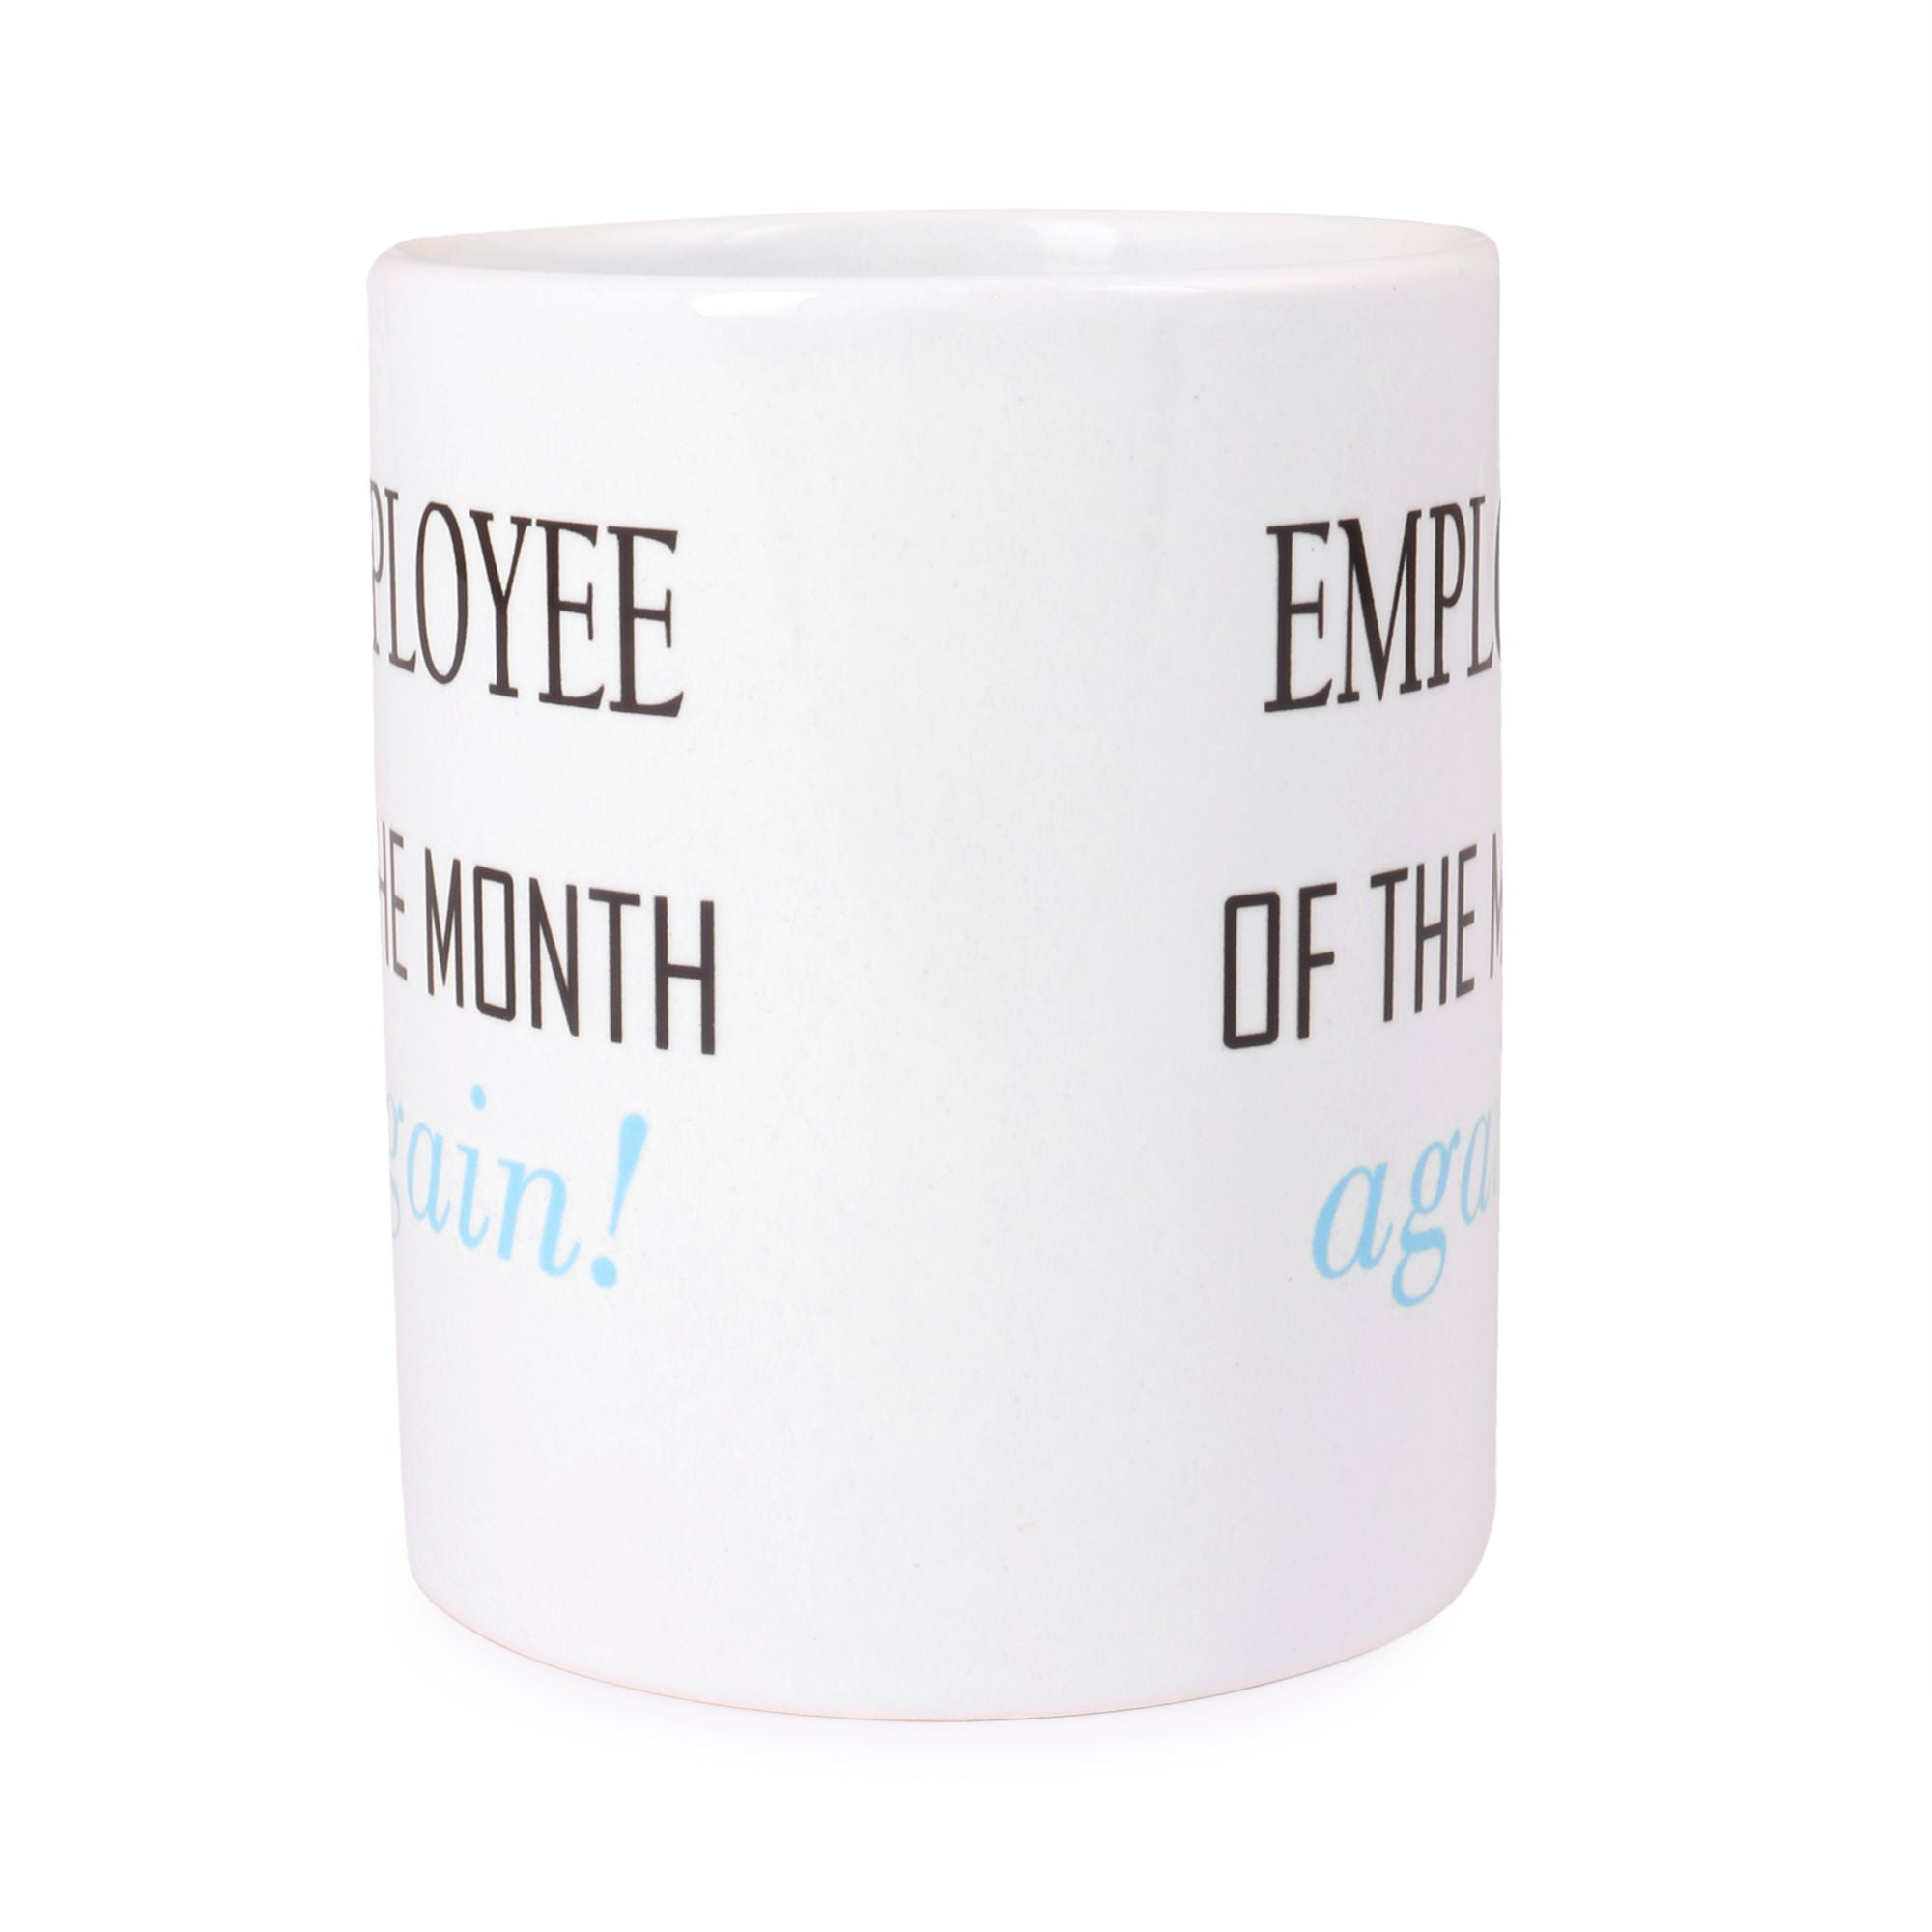 Mug - Employee of the Month Again